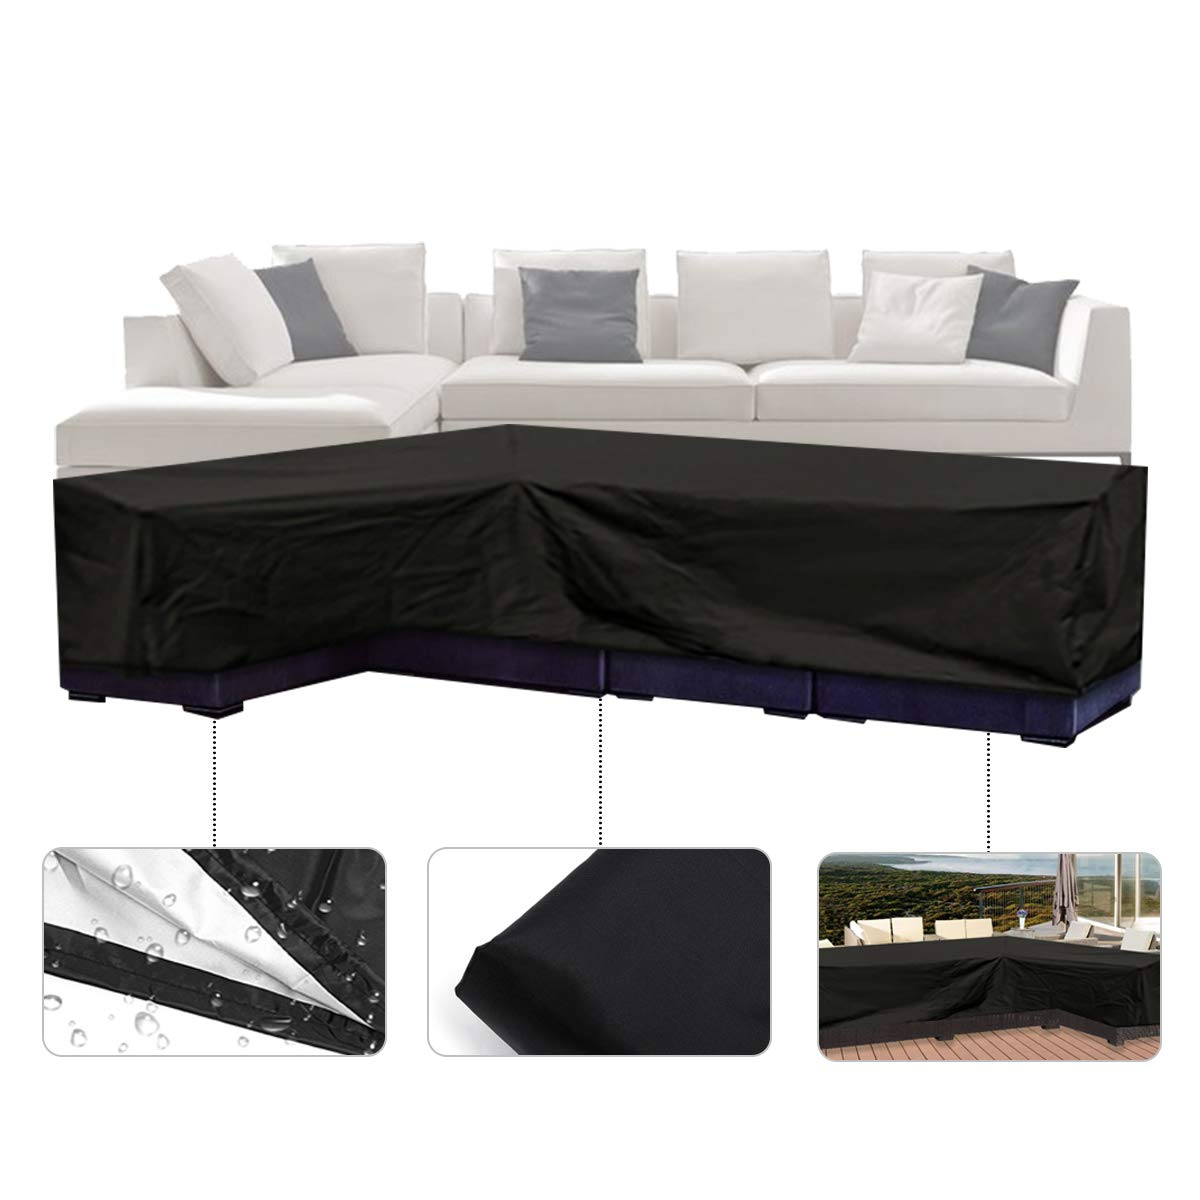 ESSORT Patio Cover, Large Outdoor Sectional Furniture Set Cover, Table Chair Sofa Covers, Waterproof Dust Proof Anti UV/Wind, Protective Cover for Garden (78''x106''x35'' L-Shaped Sofa Cover) by ESSORT